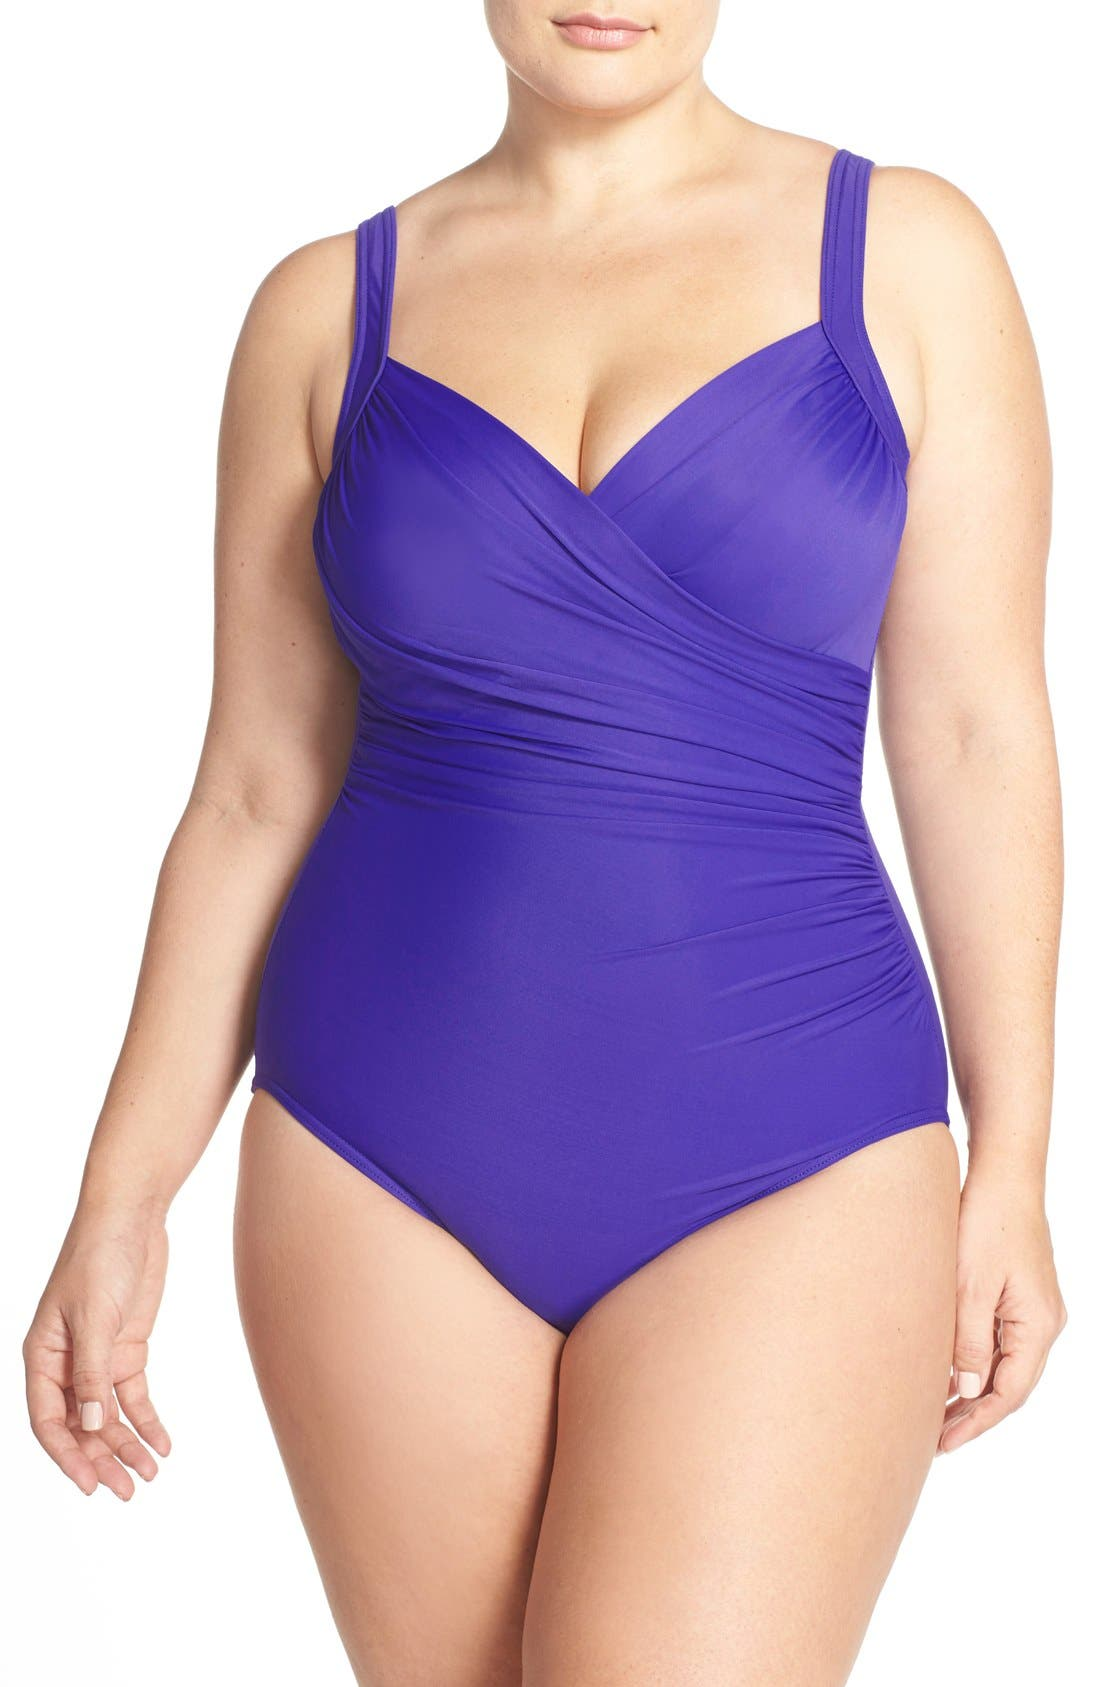 Alternate Image 1 Selected - Miraclesuit® 'Sanibel' Underwire One-Piece Swimsuit (Plus Size)